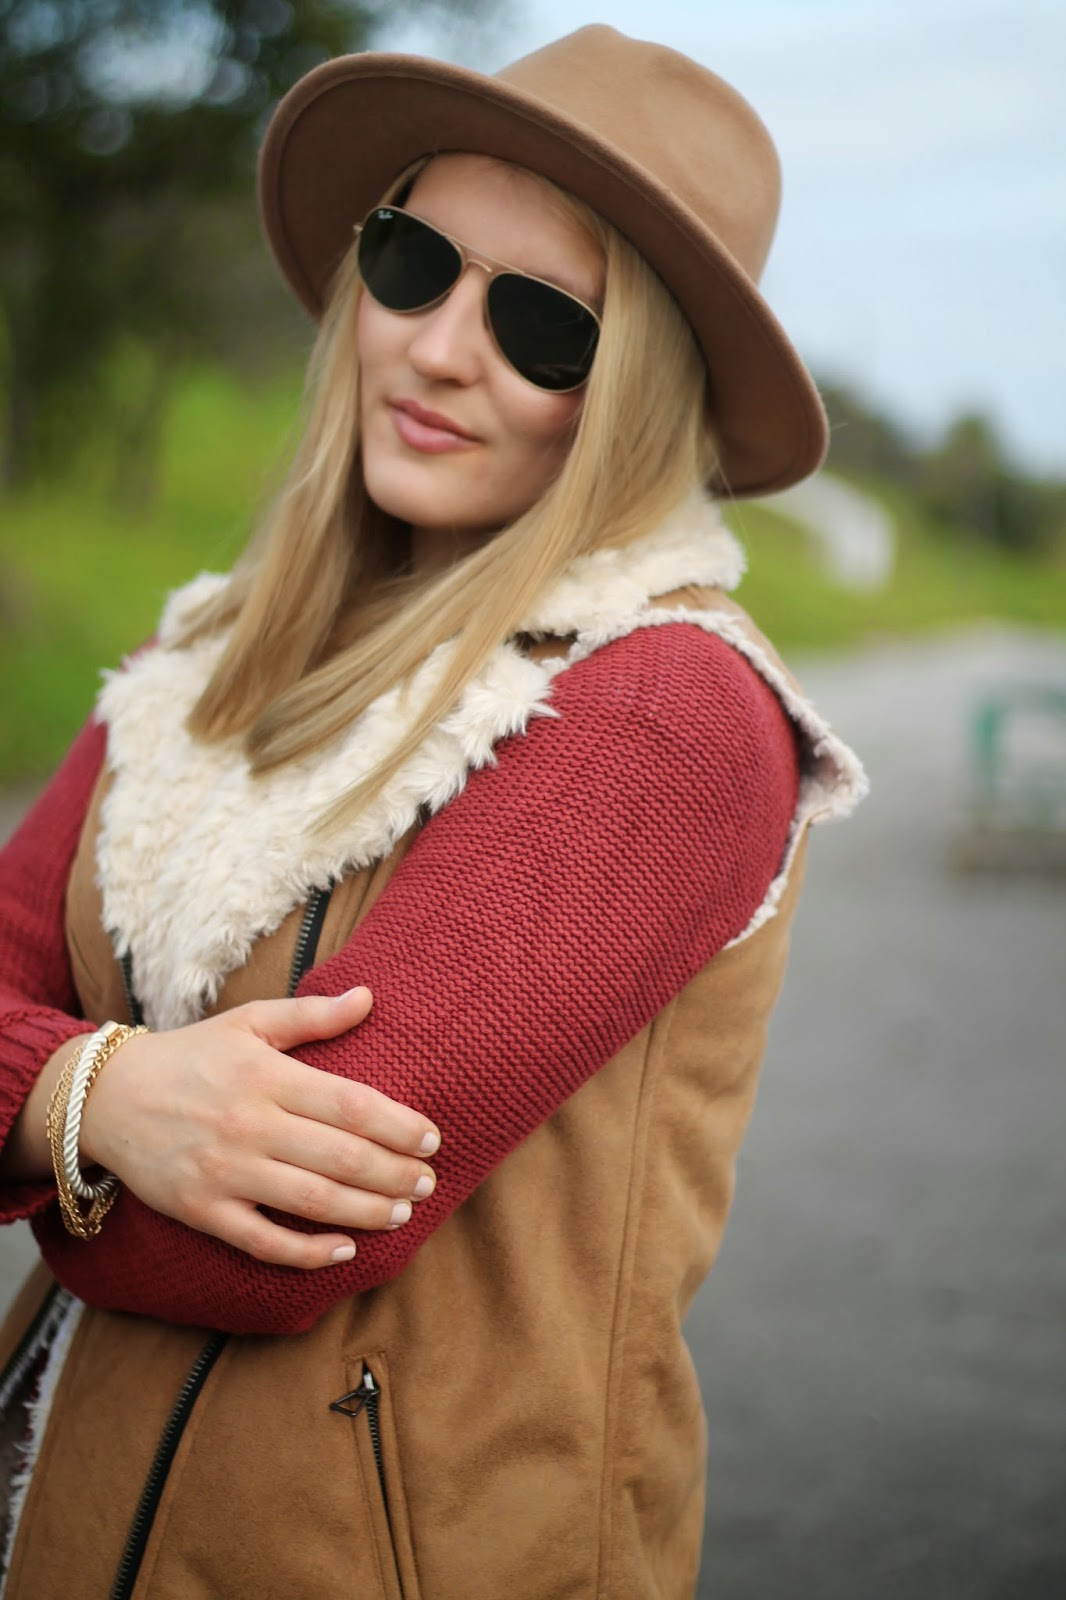 Fashionblogger Austria / Österreich / Deutsch / German / Kärnten / Carinthia / Klagenfurt / Köttmannsdorf / Spring Look / Classy / Edgy / Autumn / Autumn Style 2014 / Autumn Look / Fashionista Look / Fake Fur Lamb Sheet Vest Zara / Hat Beige Zara / Red Cardigan Roter Cardigan Ernsting's Family / Schwarze Skinny Jeans Black H&M / Beige Brown Loafers Forever 21/ Ray Ban Sunglasses Aviator Pilotenbrille / Louis Vuitton Neverufull Monogramm MC /